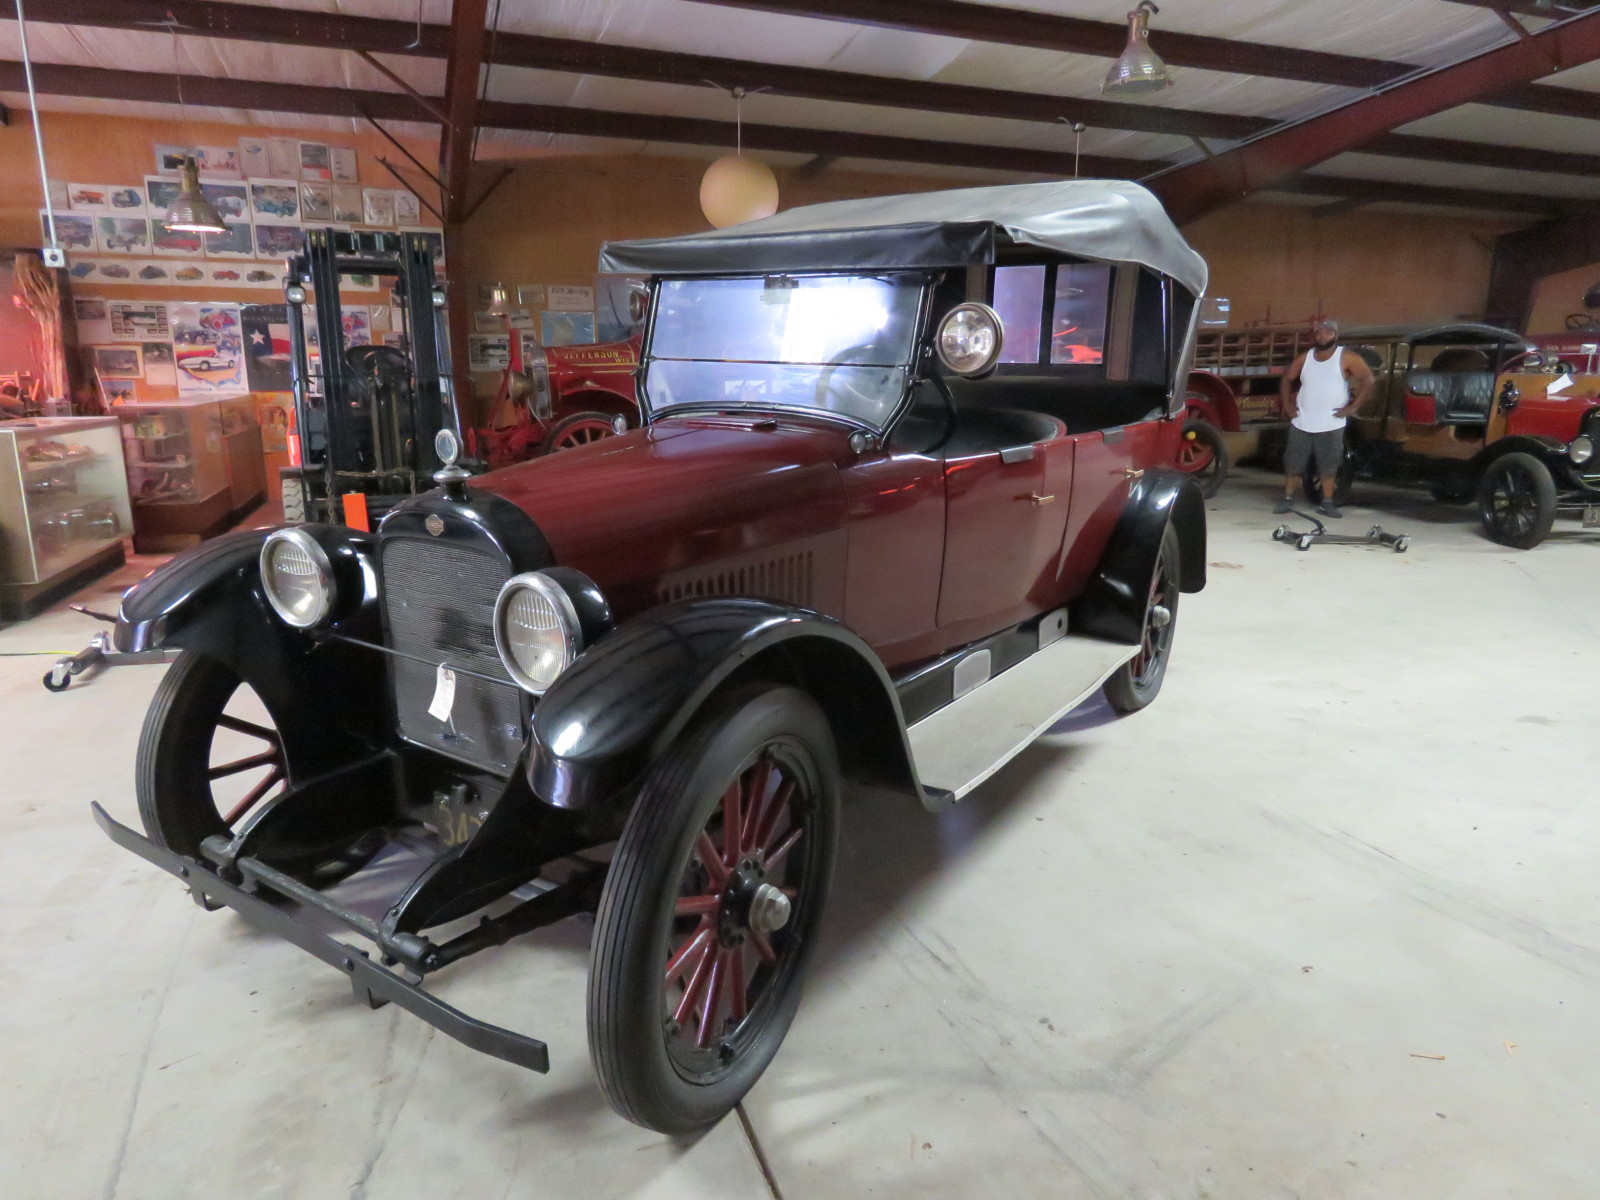 1917 Nash 4dr Touring Car - Image 3